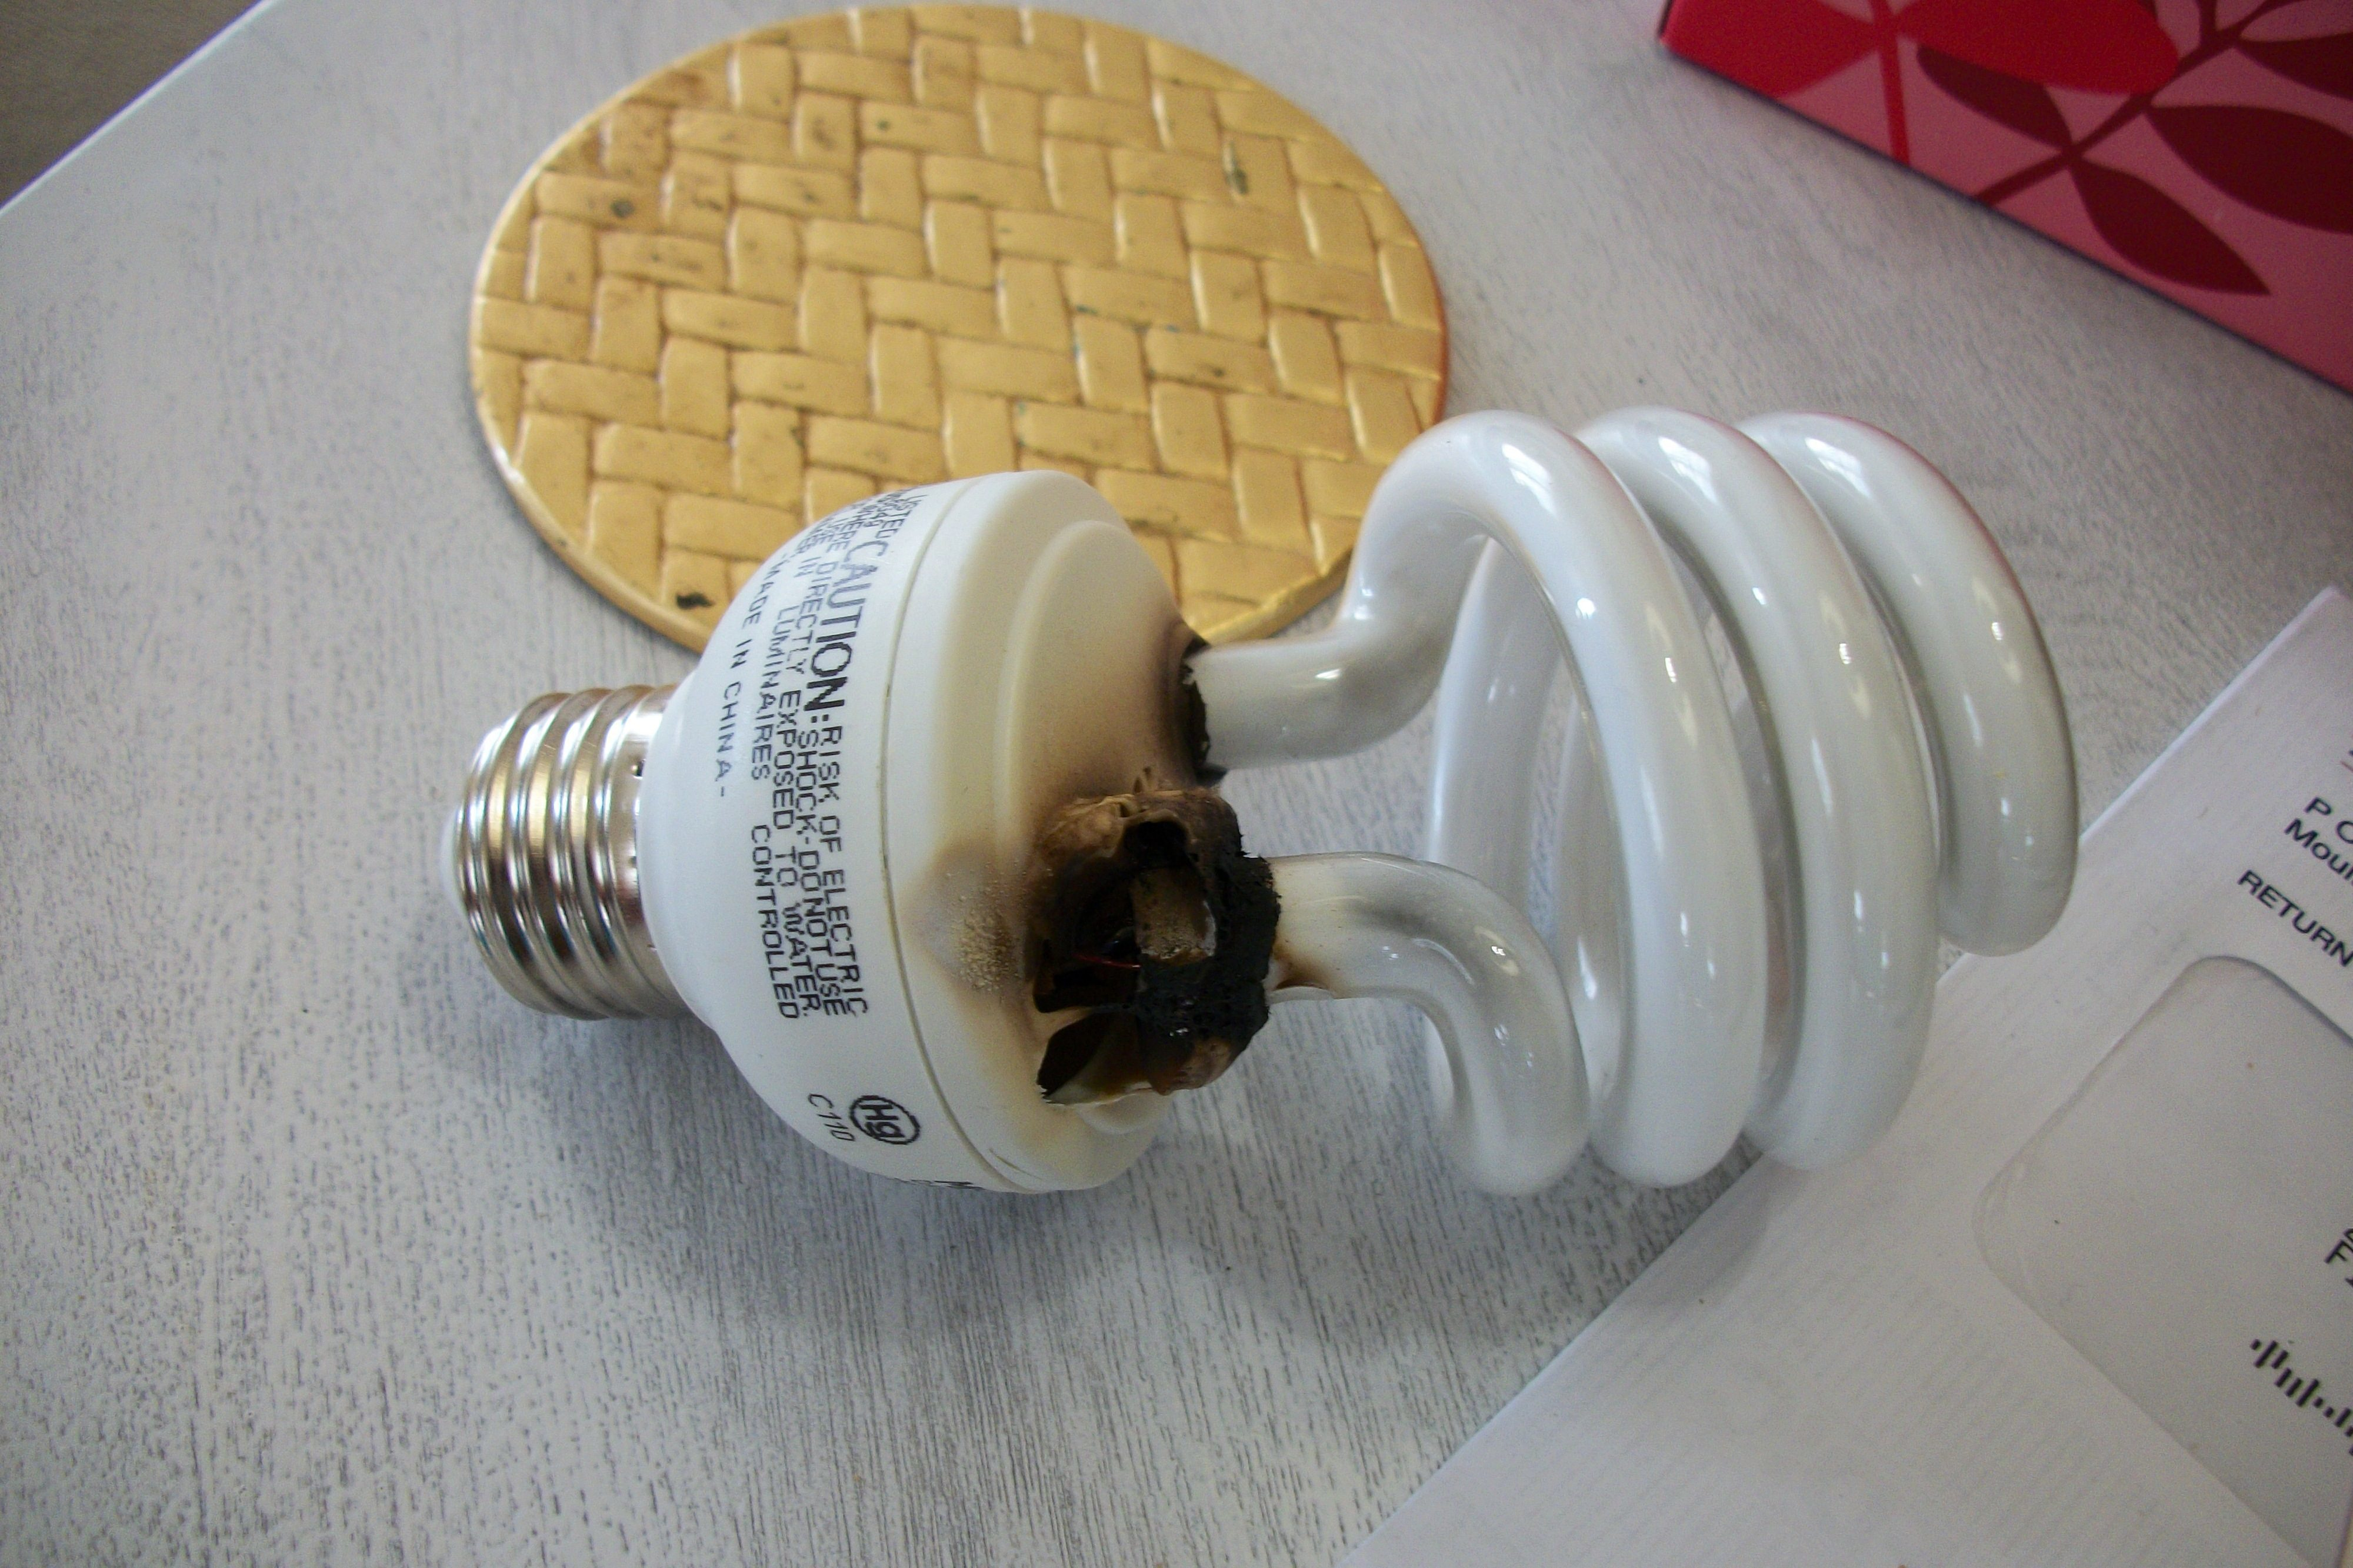 Mercury Filled Light Bulbs - Amazing Light & Fixtures Ideas:Top 218 Complaints And Reviews About Ge Light Bulbs Page 4,Lighting